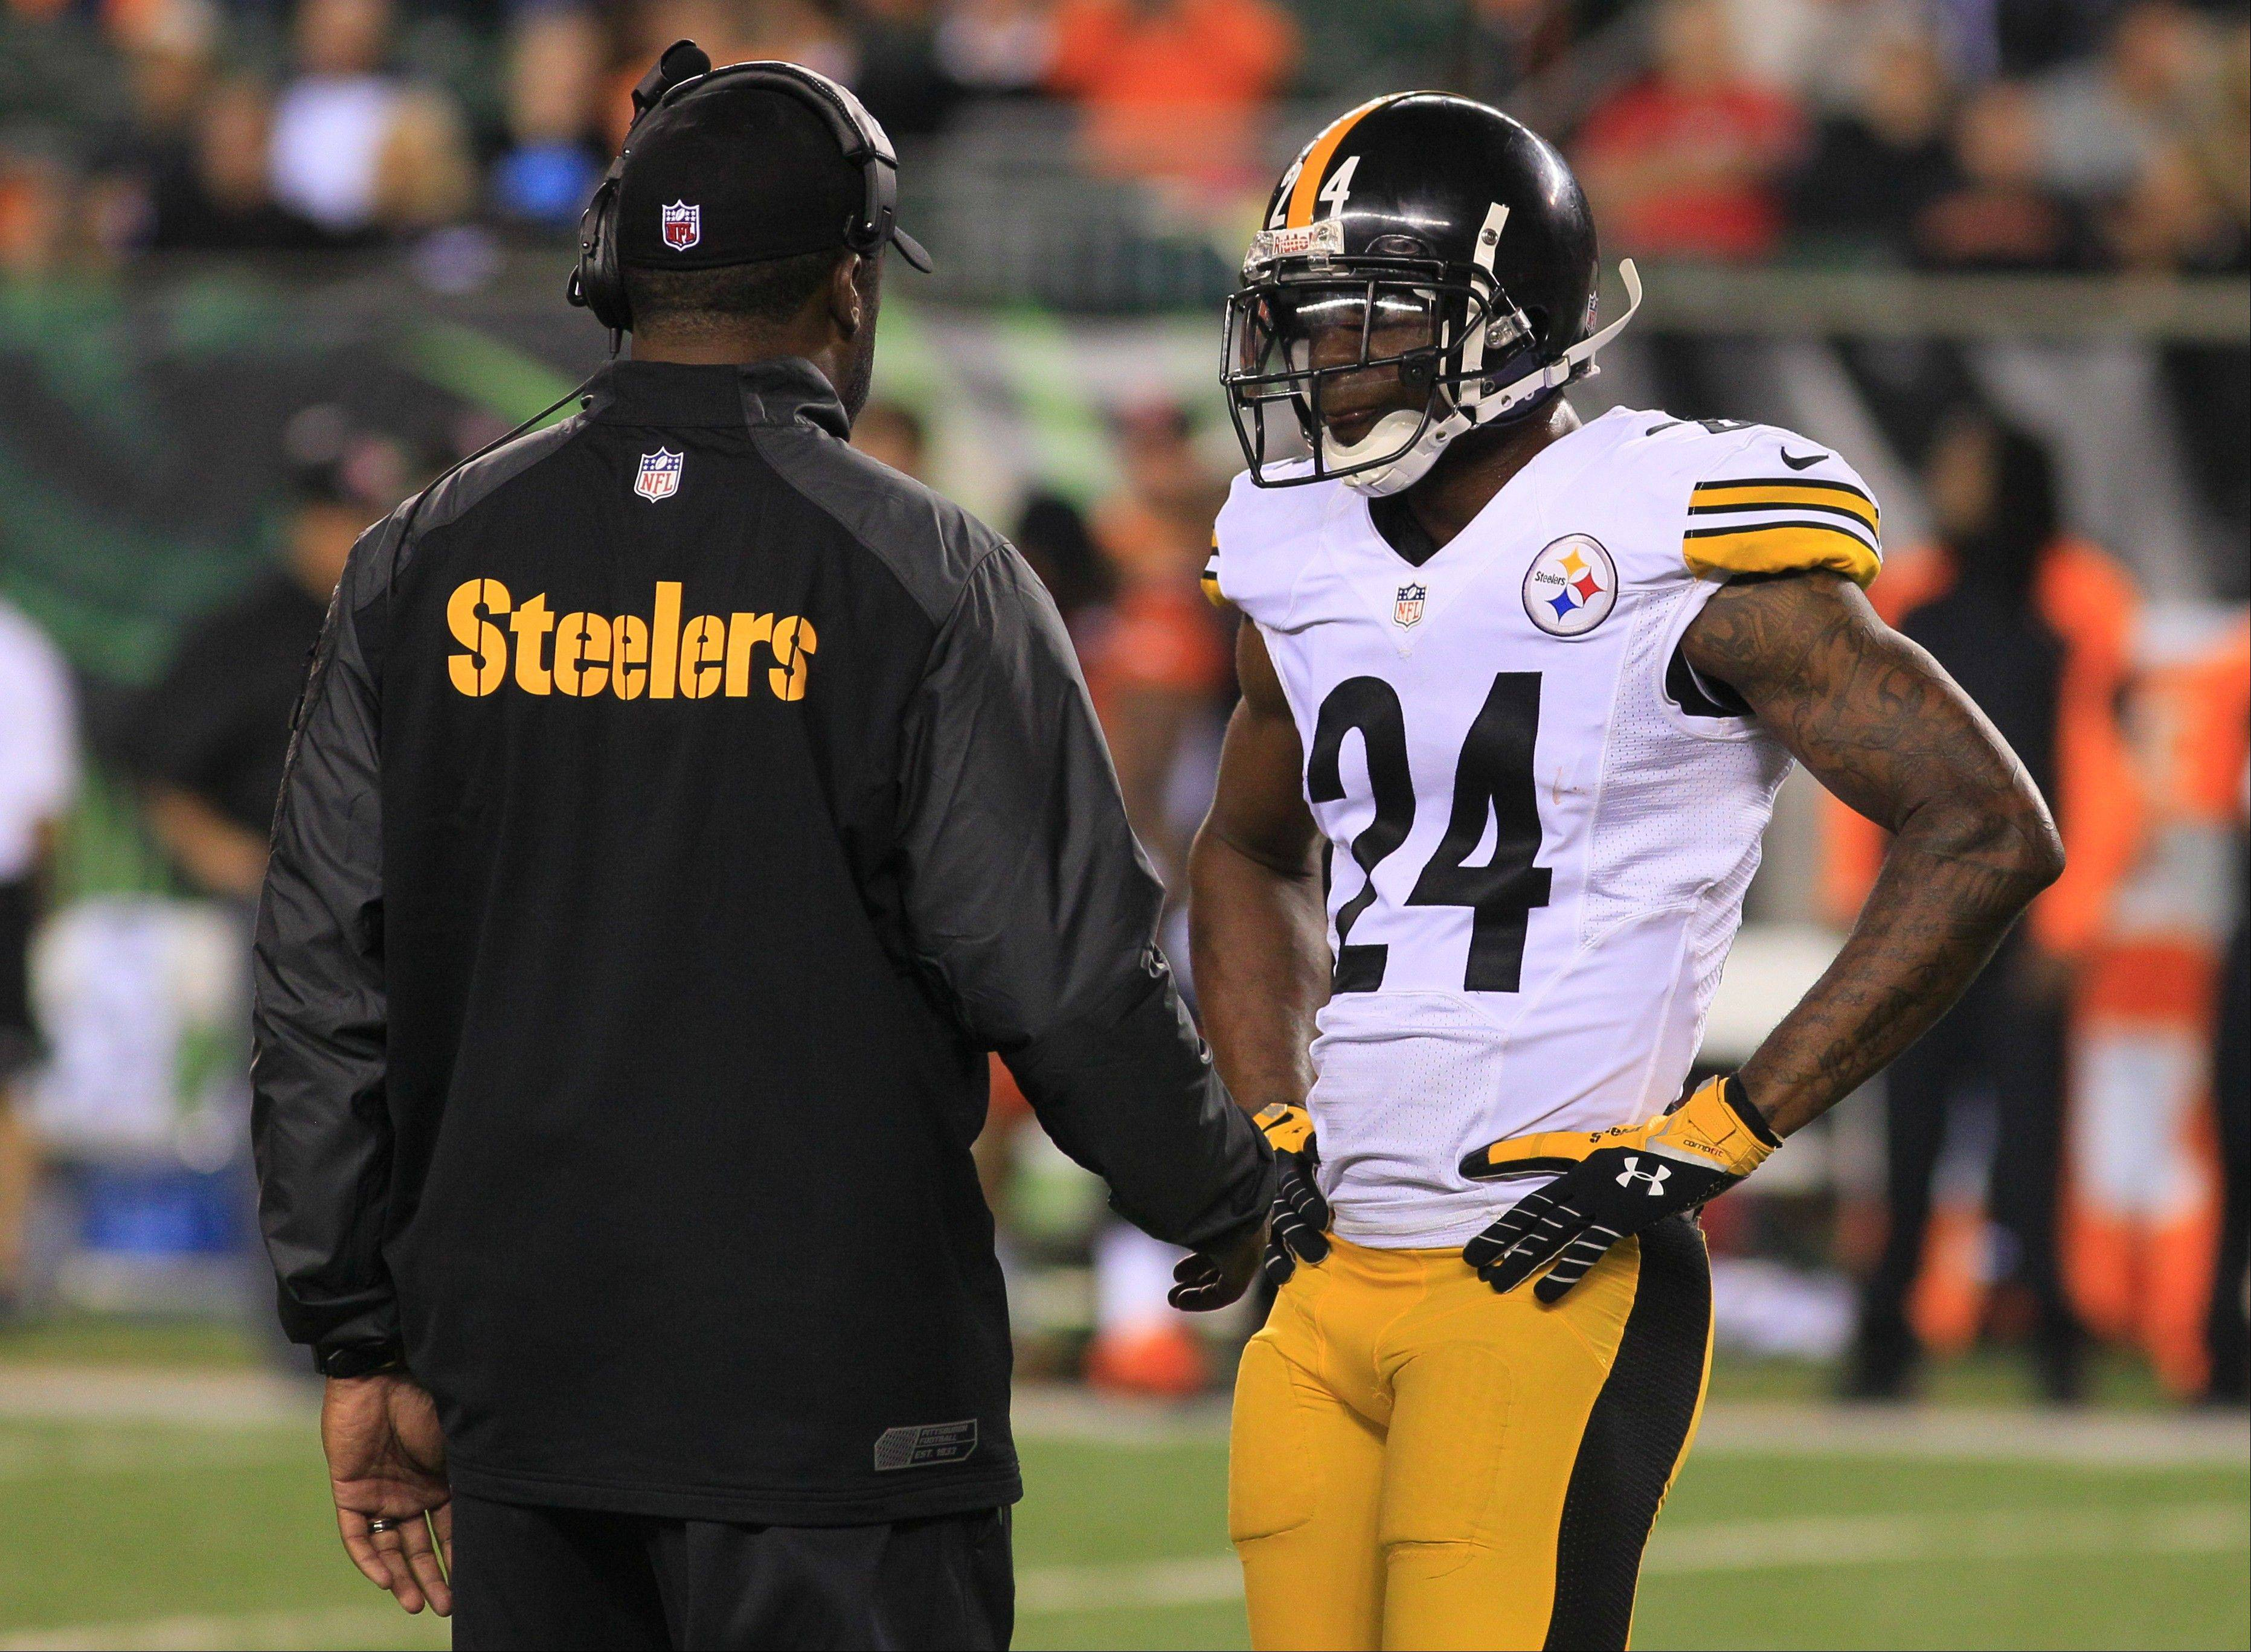 Pittsburgh Steelers head coach Mike Tomlin talks with cornerback Ike Taylor (24) in the second half of an NFL football game against the Cincinnati Bengals, Monday, Sept. 16, 2013, in Cincinnati.